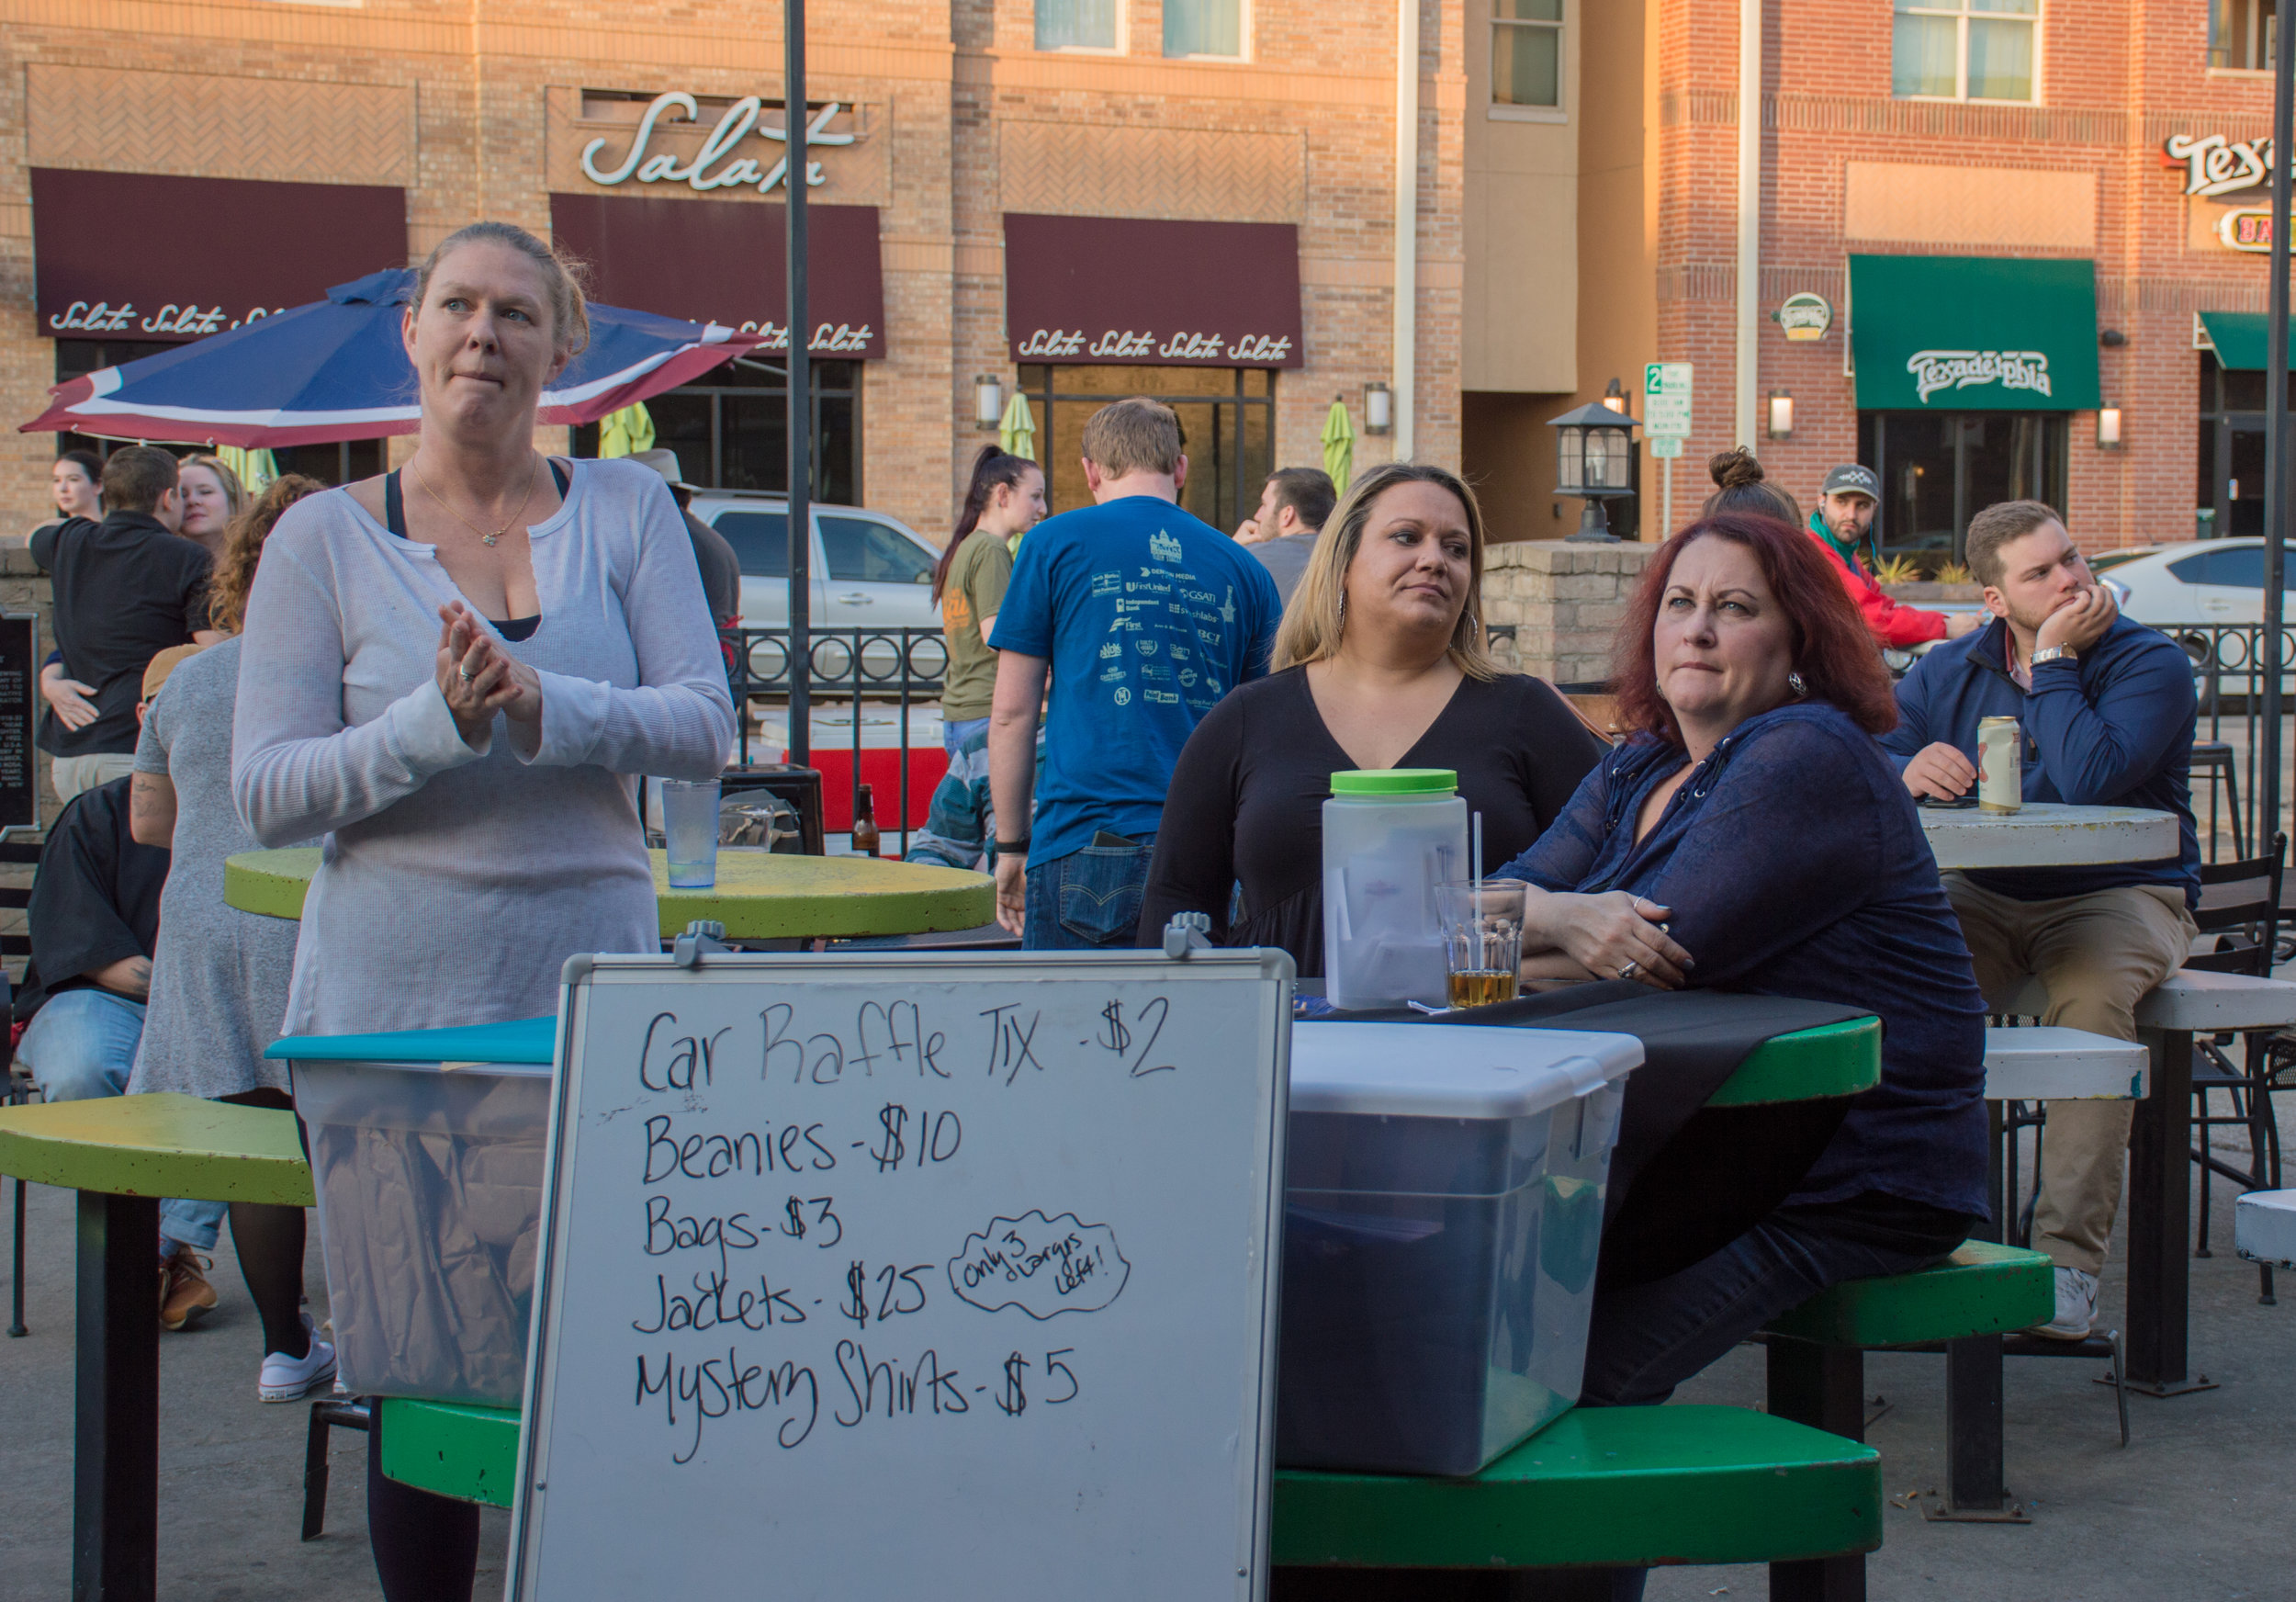 'Friends with Benefits', a local fundraiser selling raffle tickets for great prizes during the game.